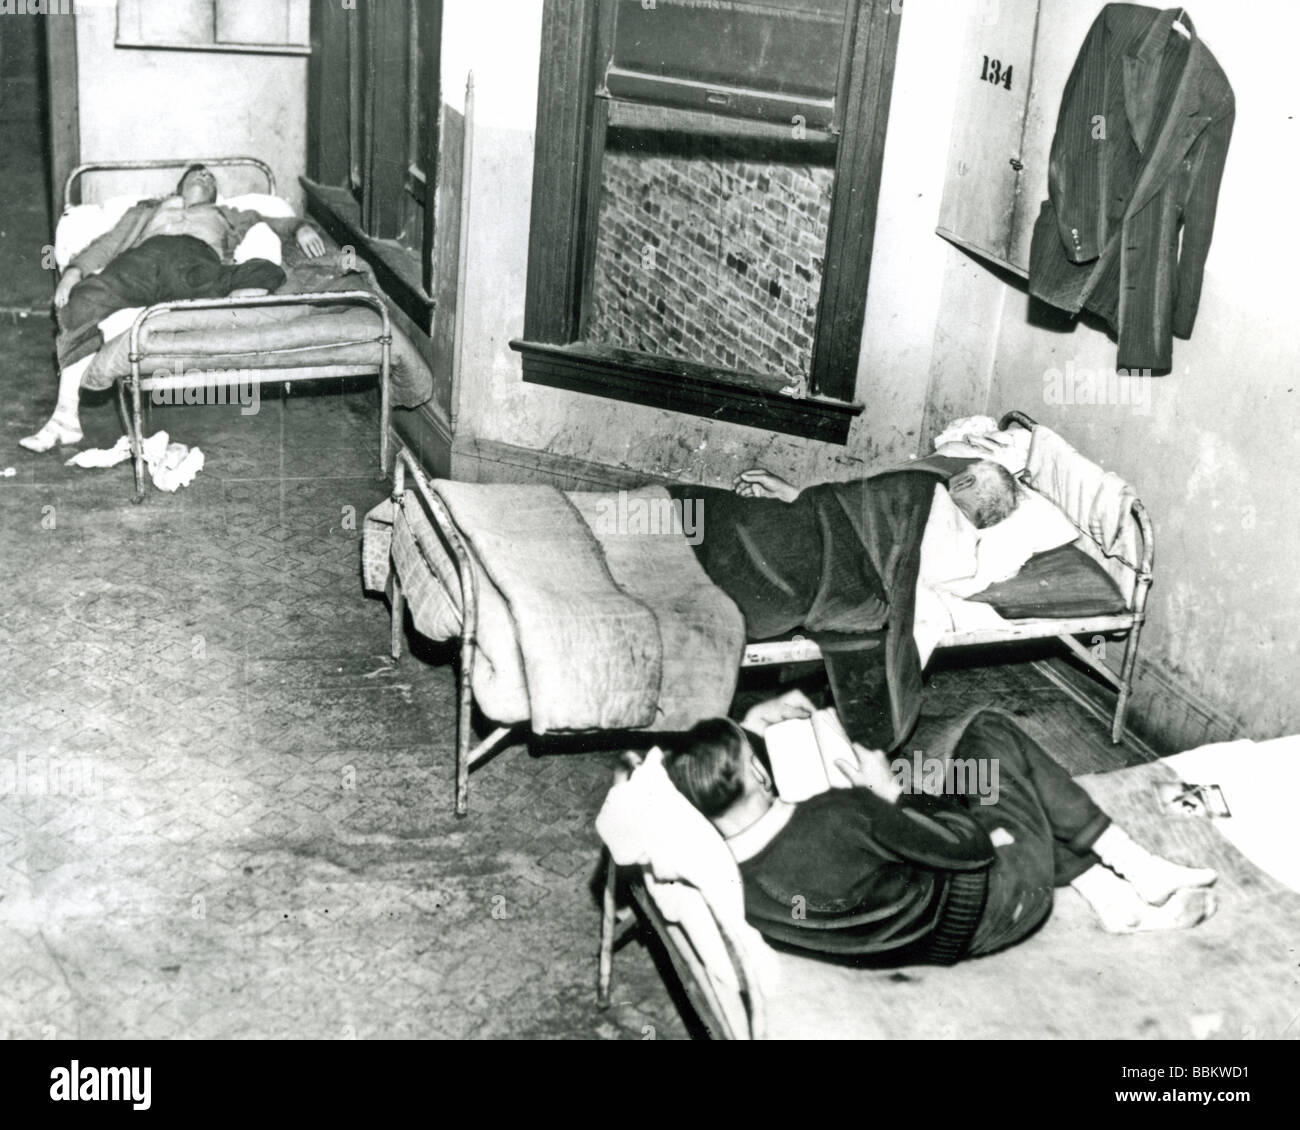 POVERTY  A Chicago flophouse during the Great Depression of the 1930s - Stock Image